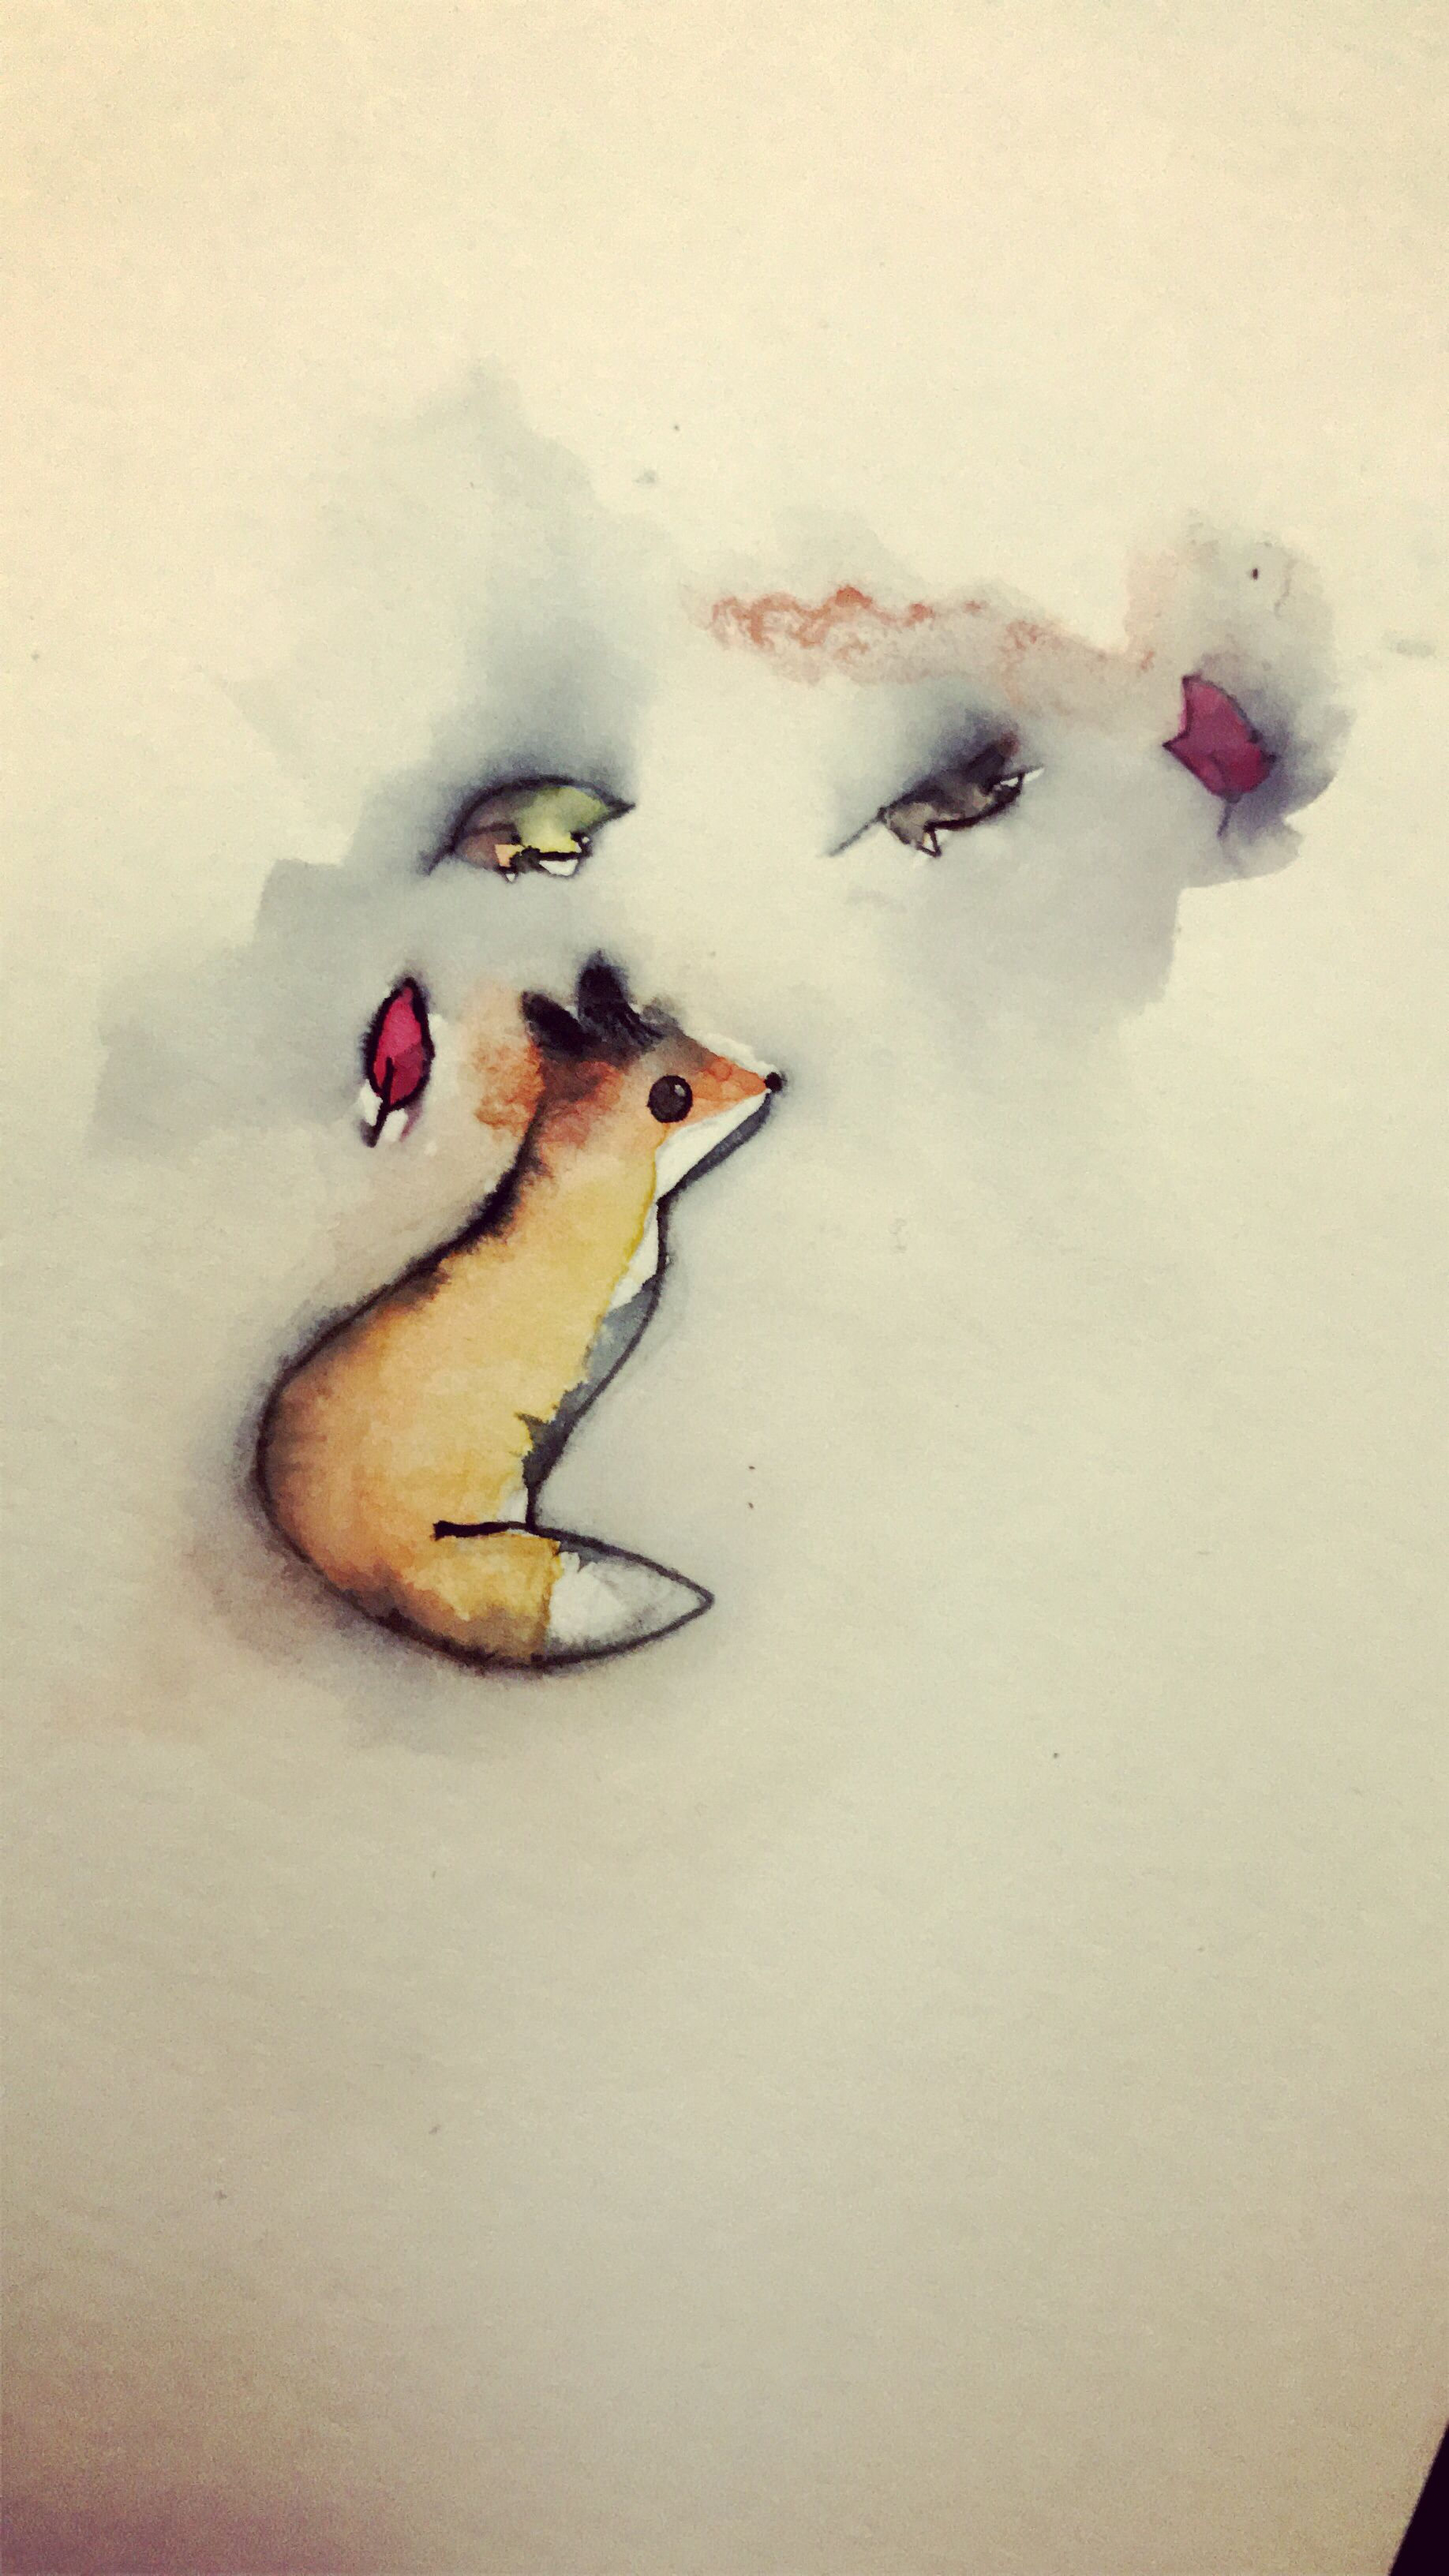 1836x3264 Cute Watercolor Fox Art!!!!! Watercolor Fox